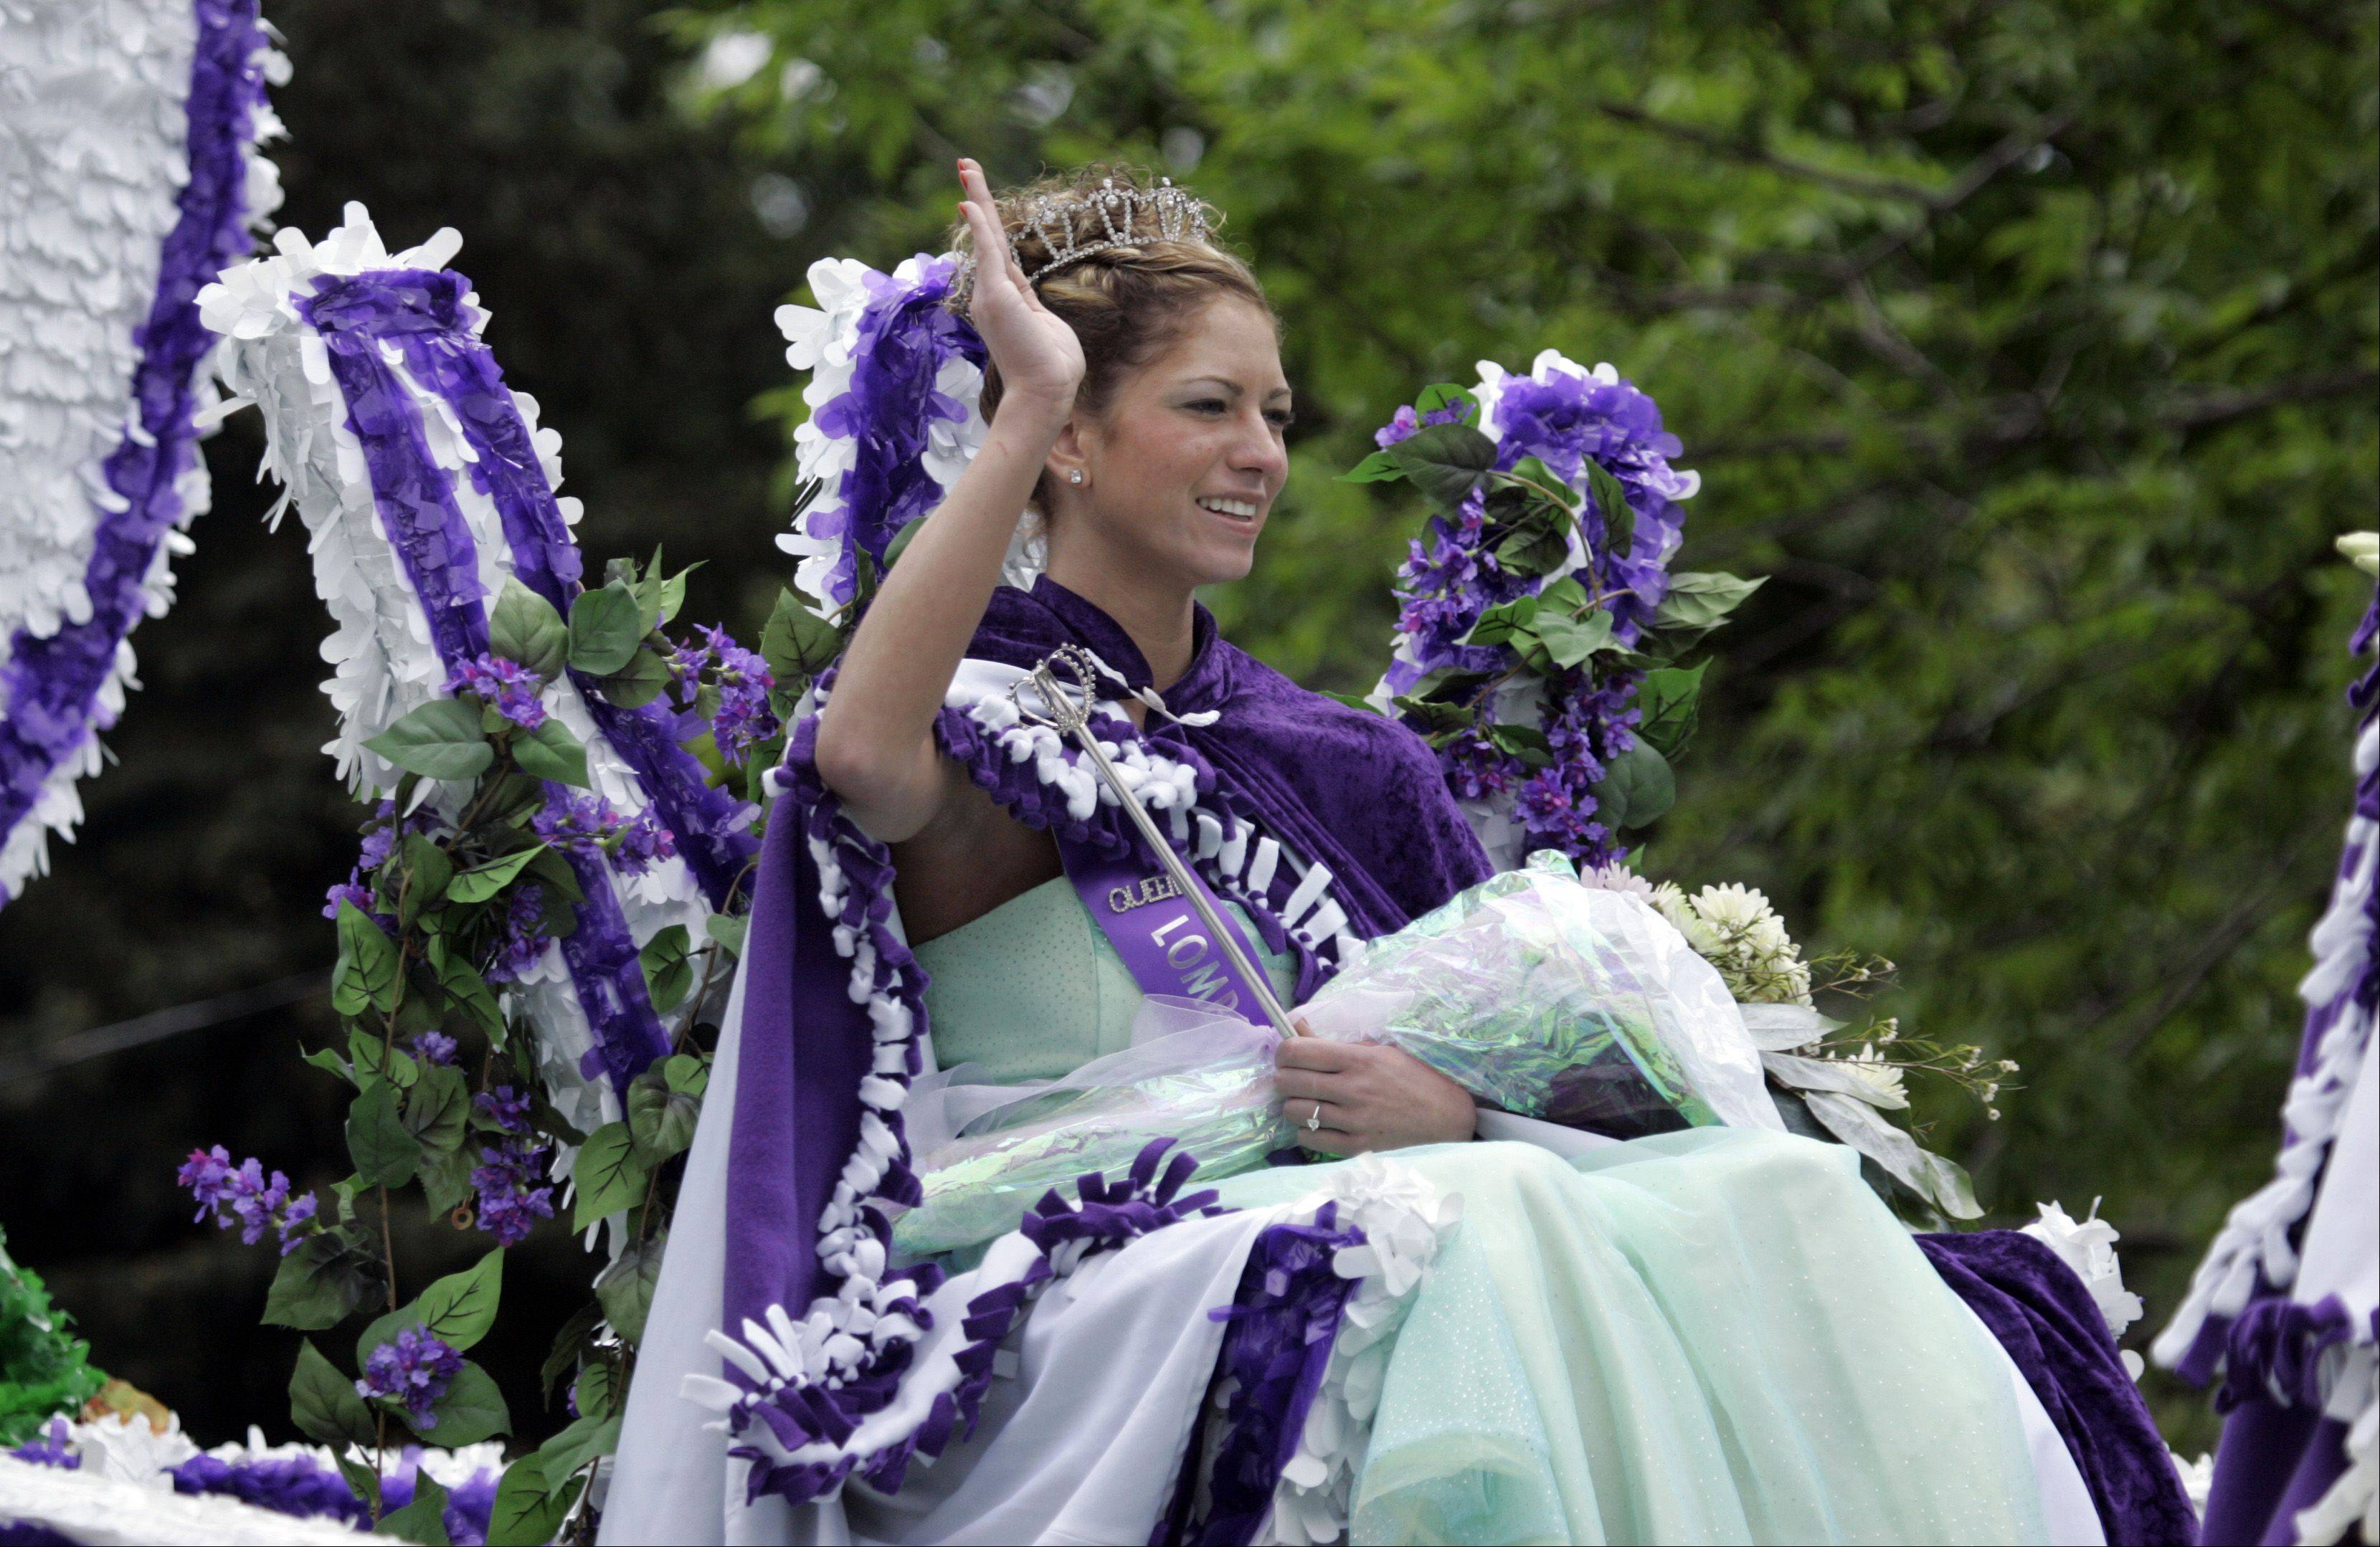 Lombard's Lilac Parade strolls through the decades